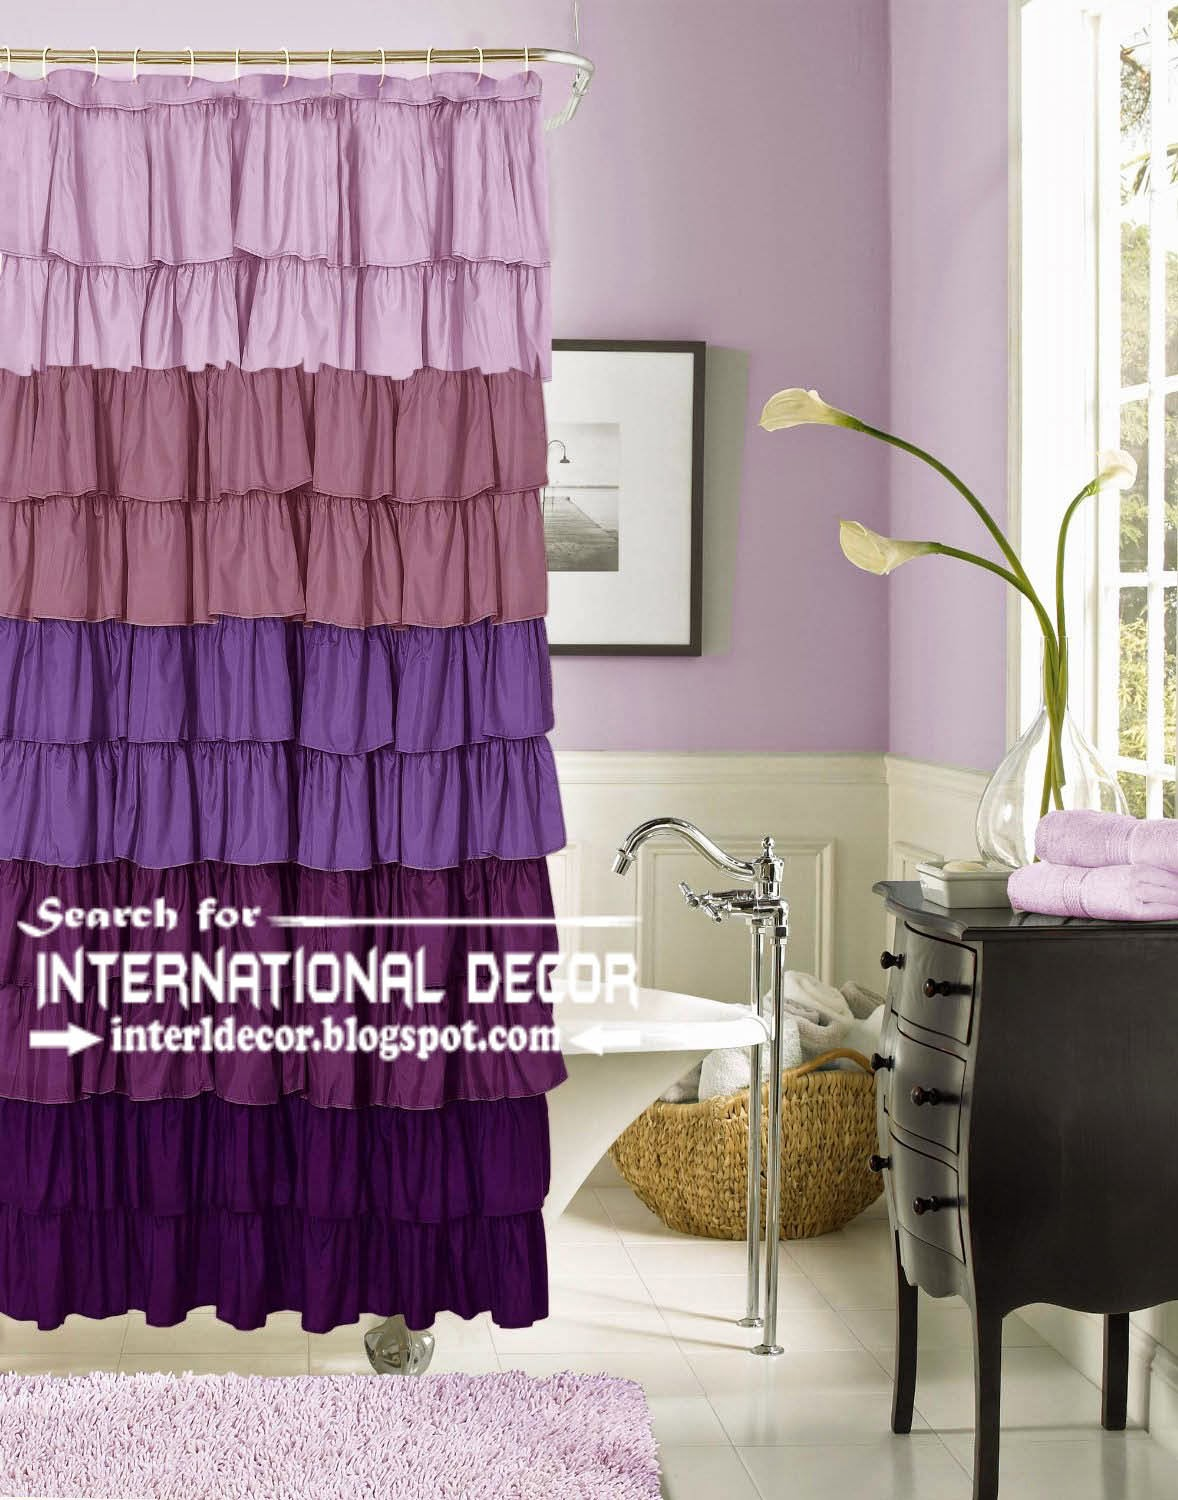 Fashionable shower curtains in stylish colors | Curtain Designs